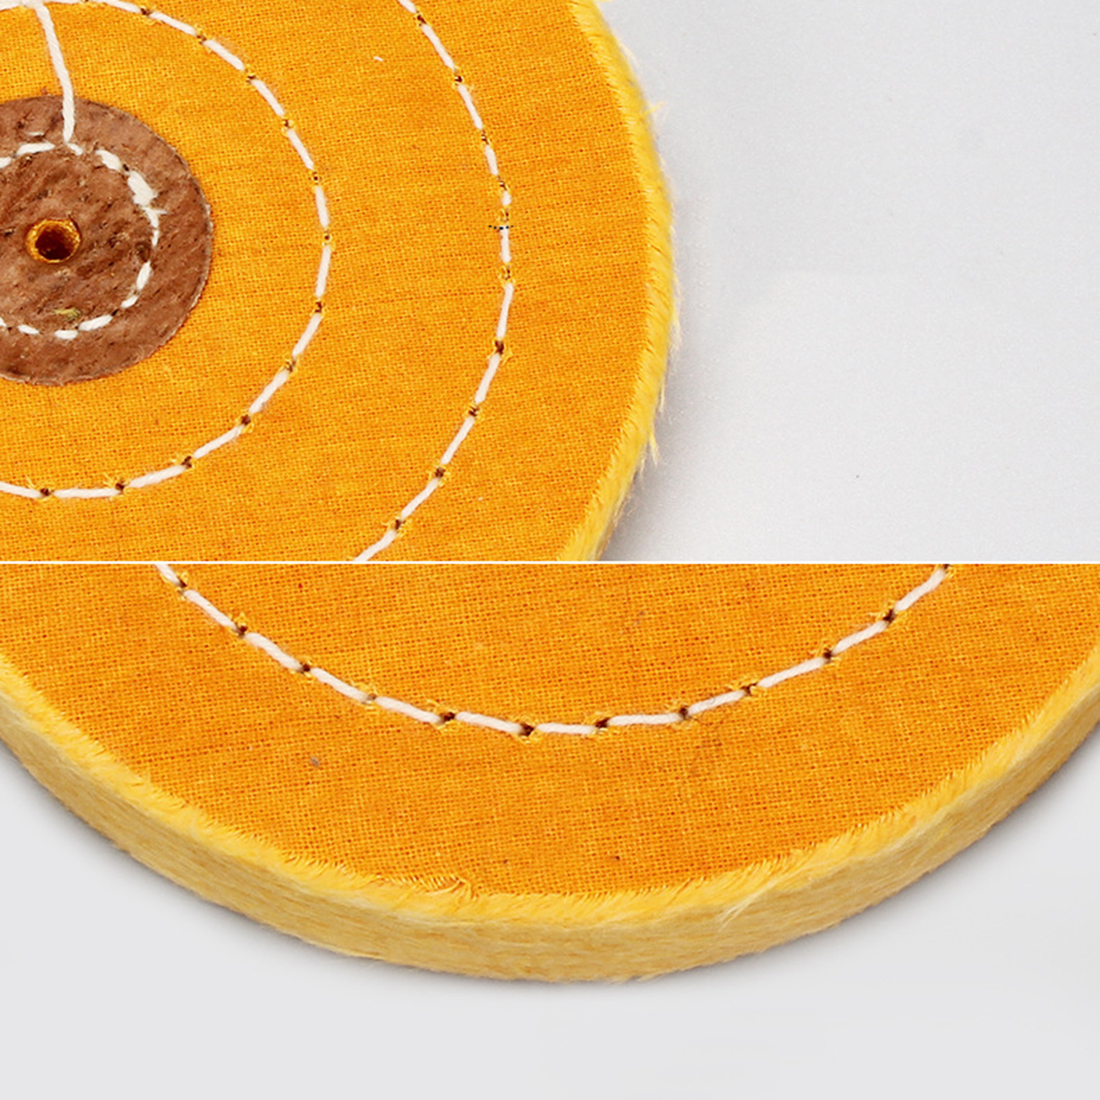 4mm Hole 3-8 Inch Cotton Lint Cloth Polishing Pad Wheel For Gold Silver Jewelry